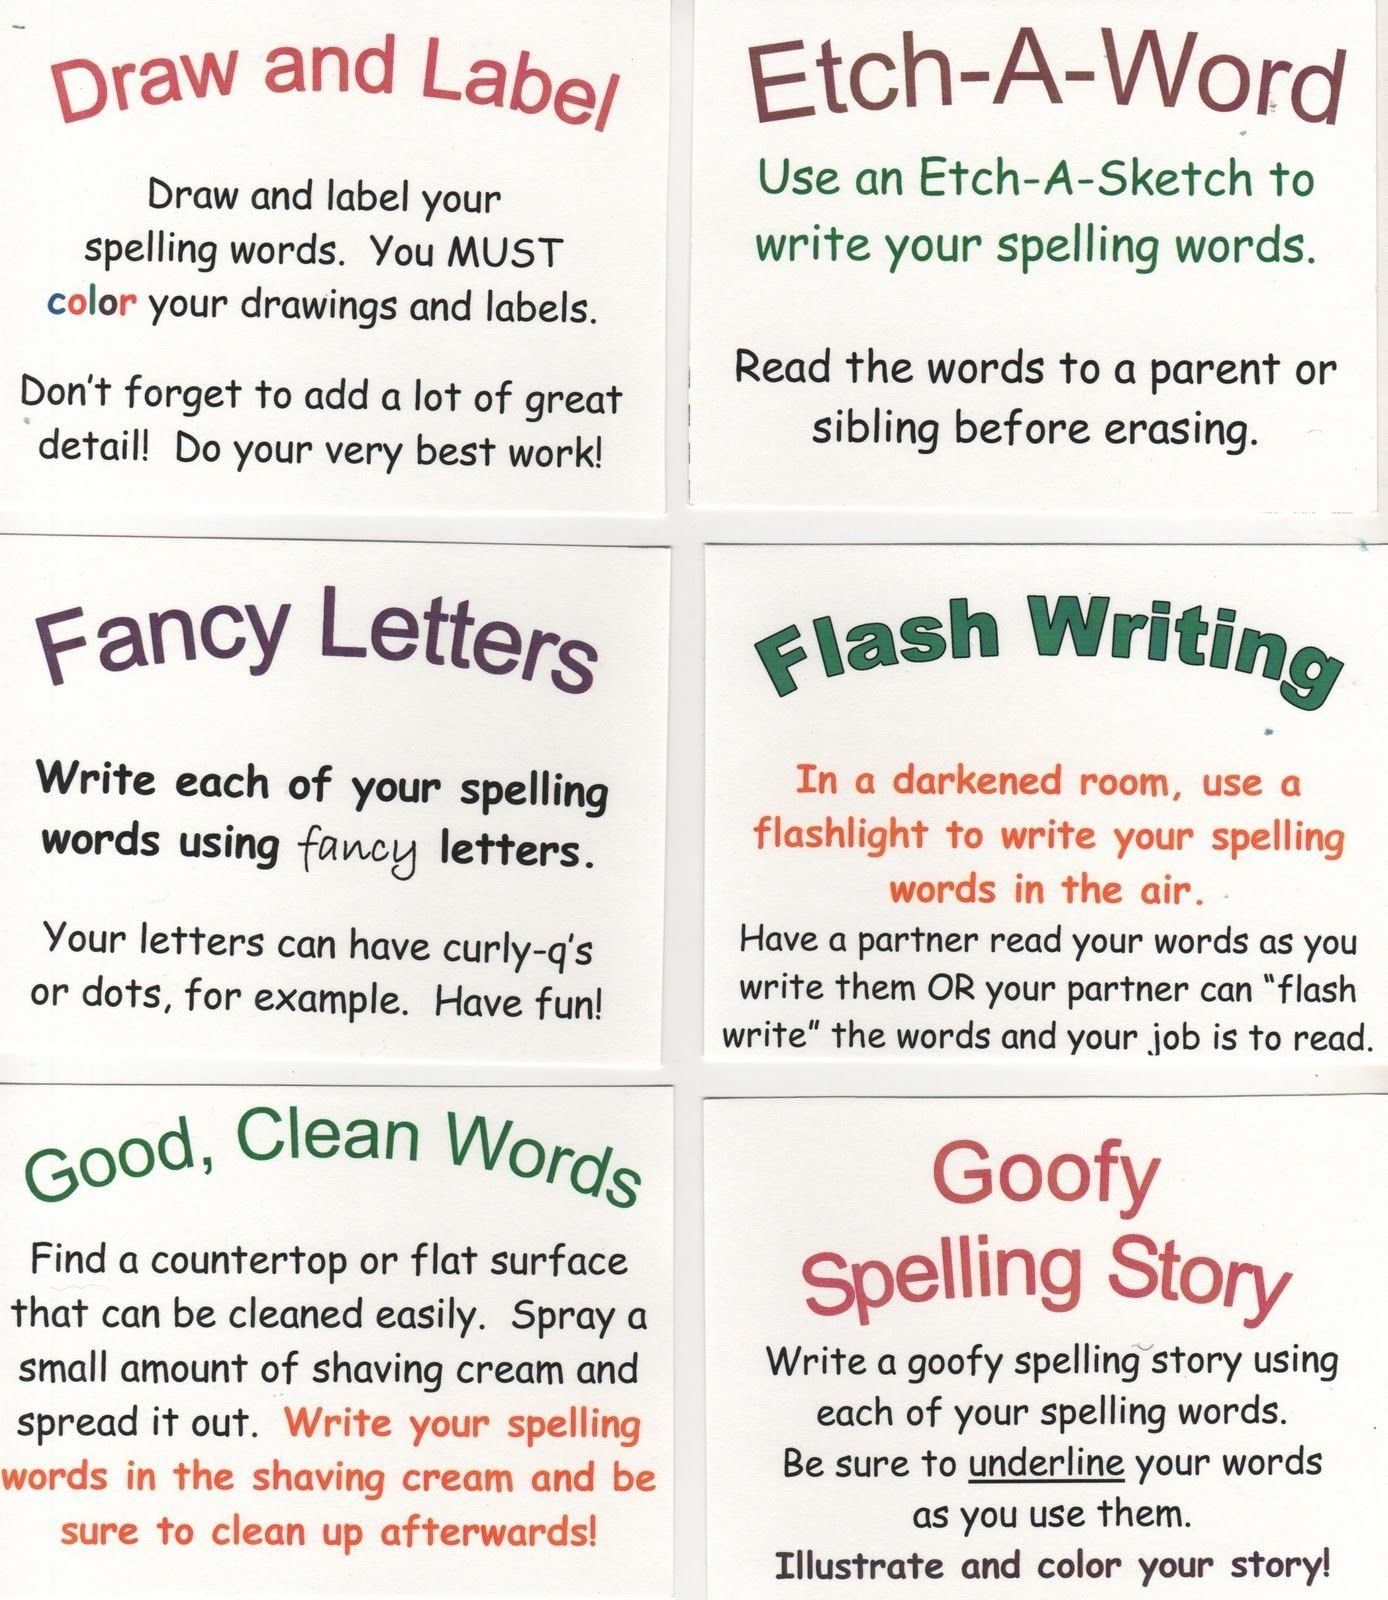 10 Lovely Enrichment Ideas For Elementary Students elementary school enrichment activities 72 spelling ideas 2 2020